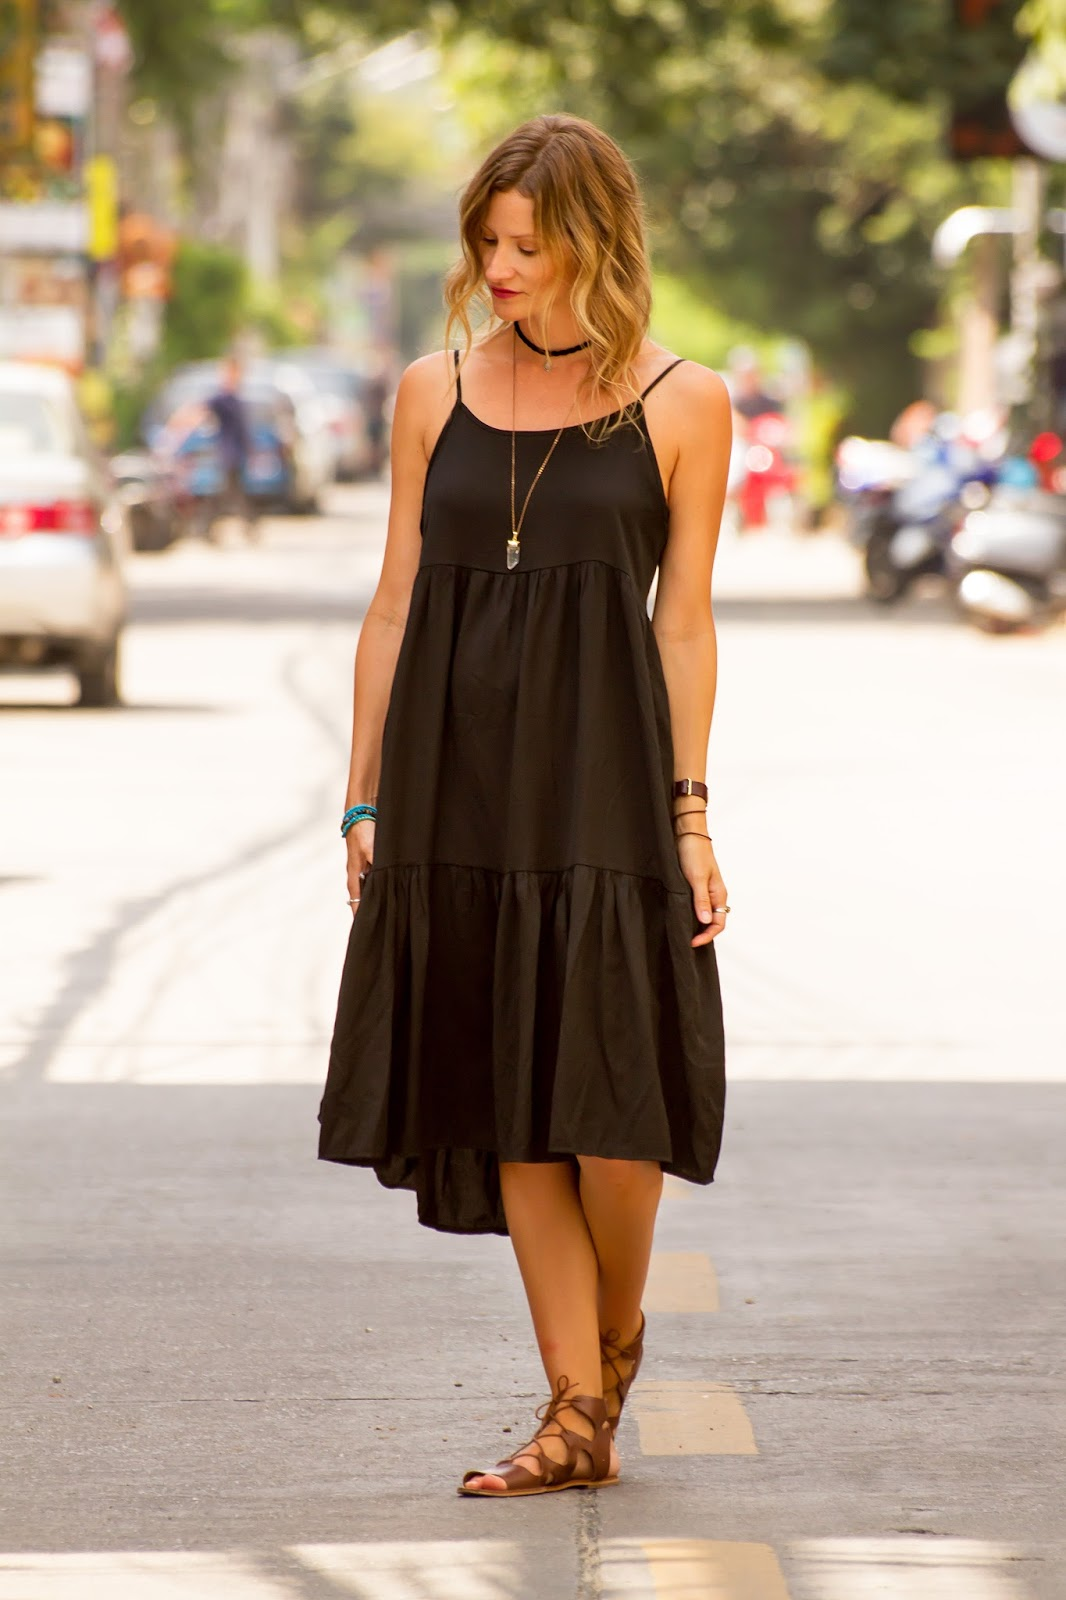 Fashion and Travel Blogger, Alison Hutchinson, is wearing a black dress during the mourning period in Chiang Mai, Thailand